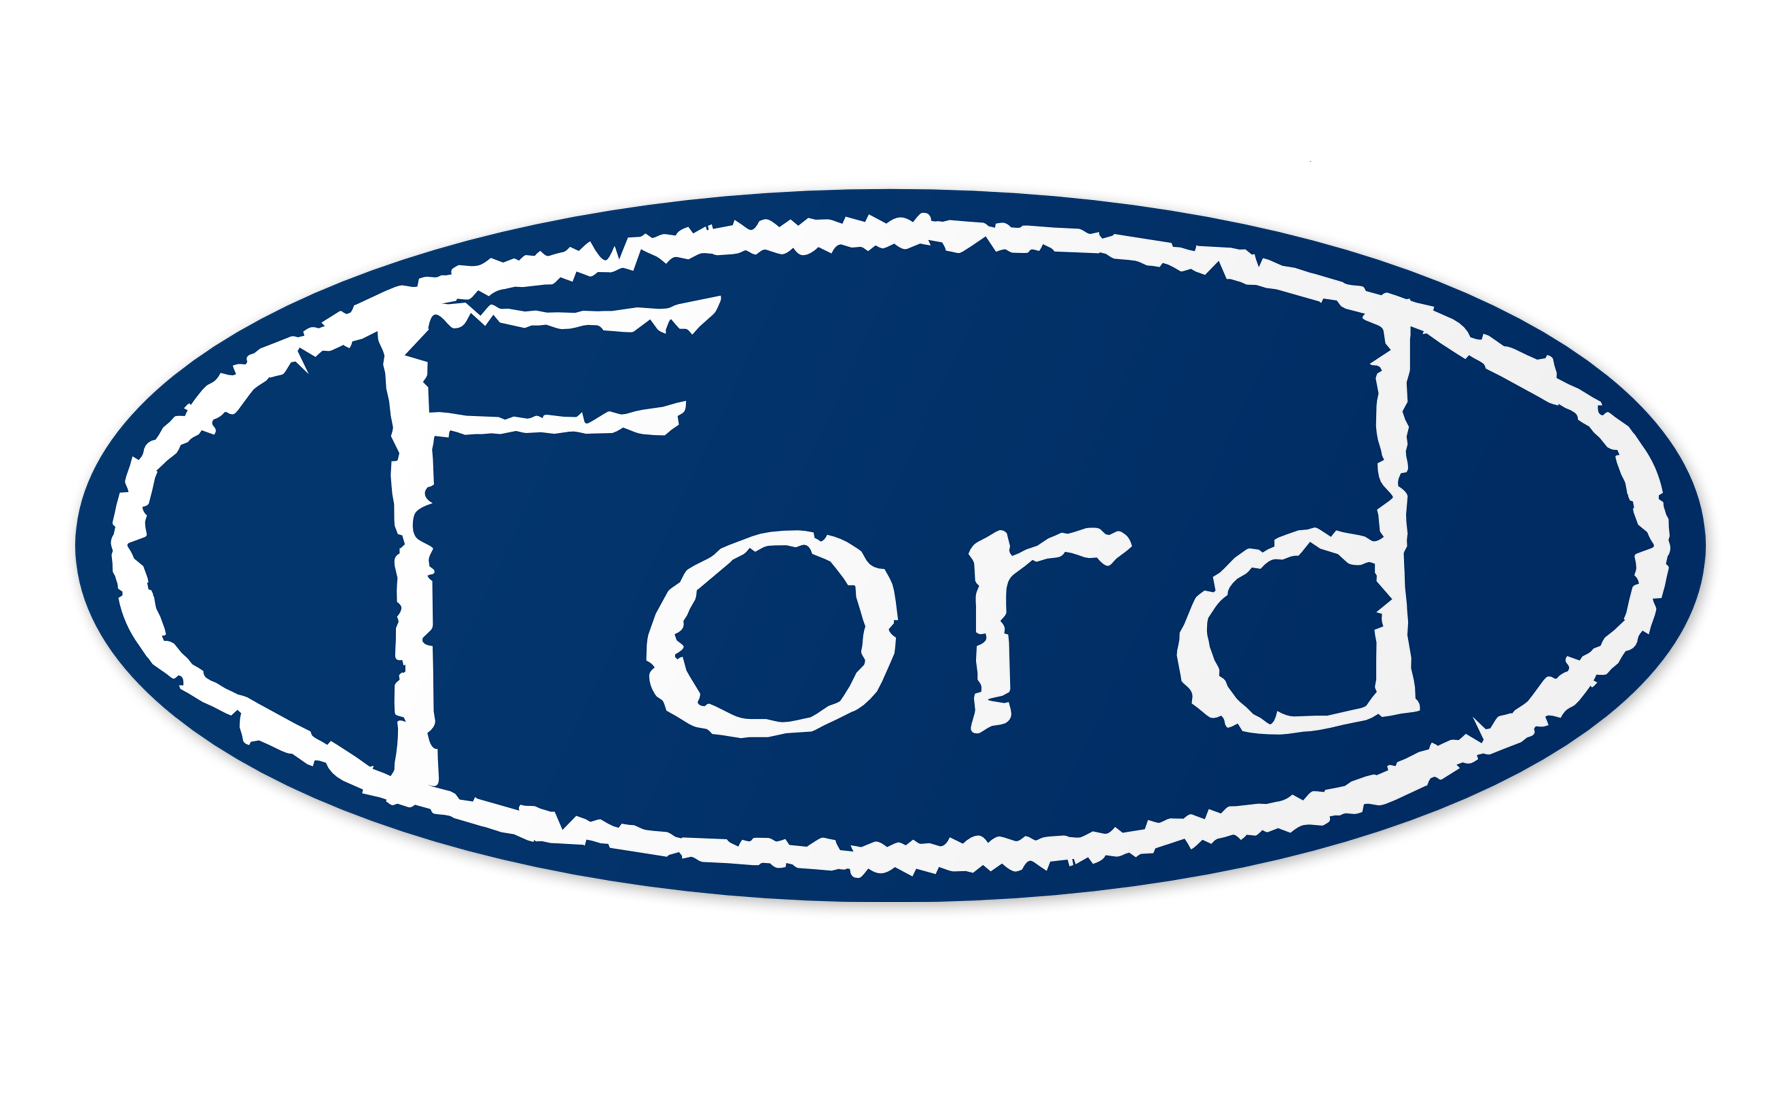 Free Ford Logo Png Download Vector image #14224